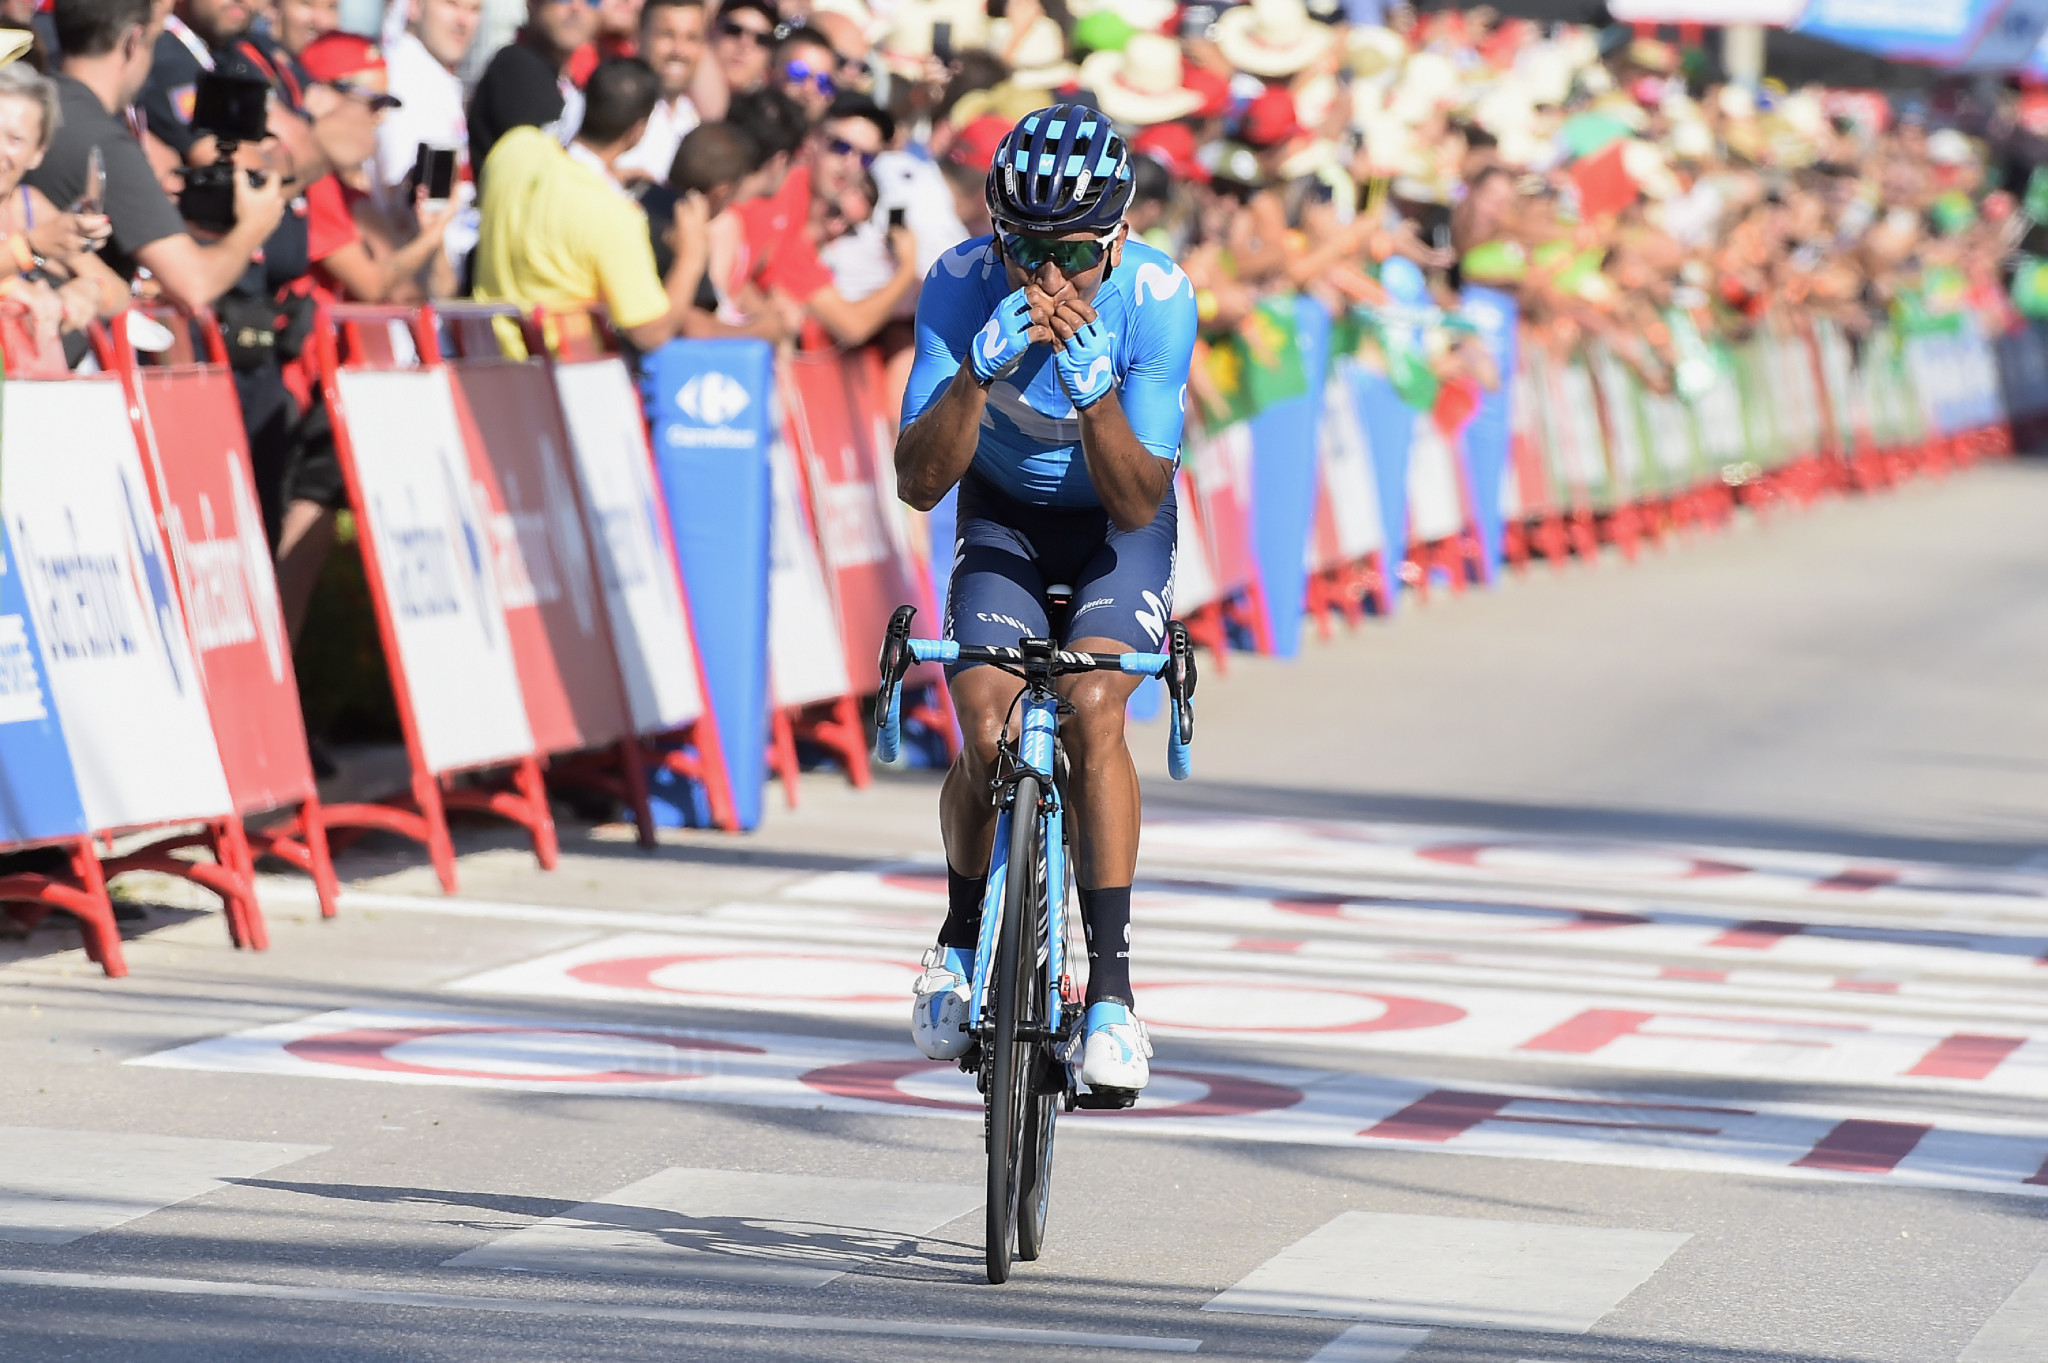 Nairo Quintana claimed victory on the second stage of the Vuelta a España ©Getty Images